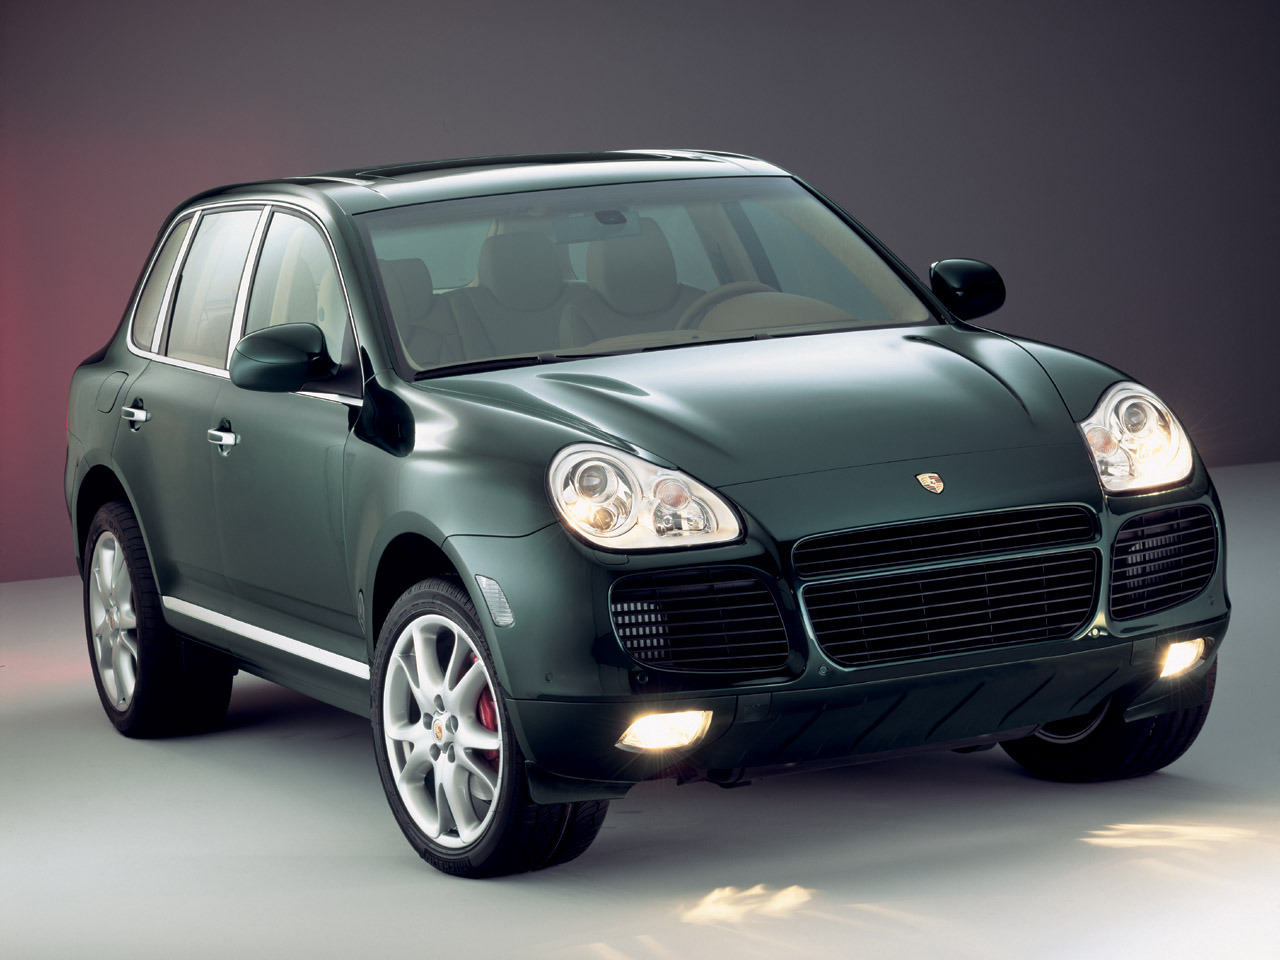 Want: British Racing Green Cayenne - If only it weren't a Volkswagen Touareg with a Porsche logo…